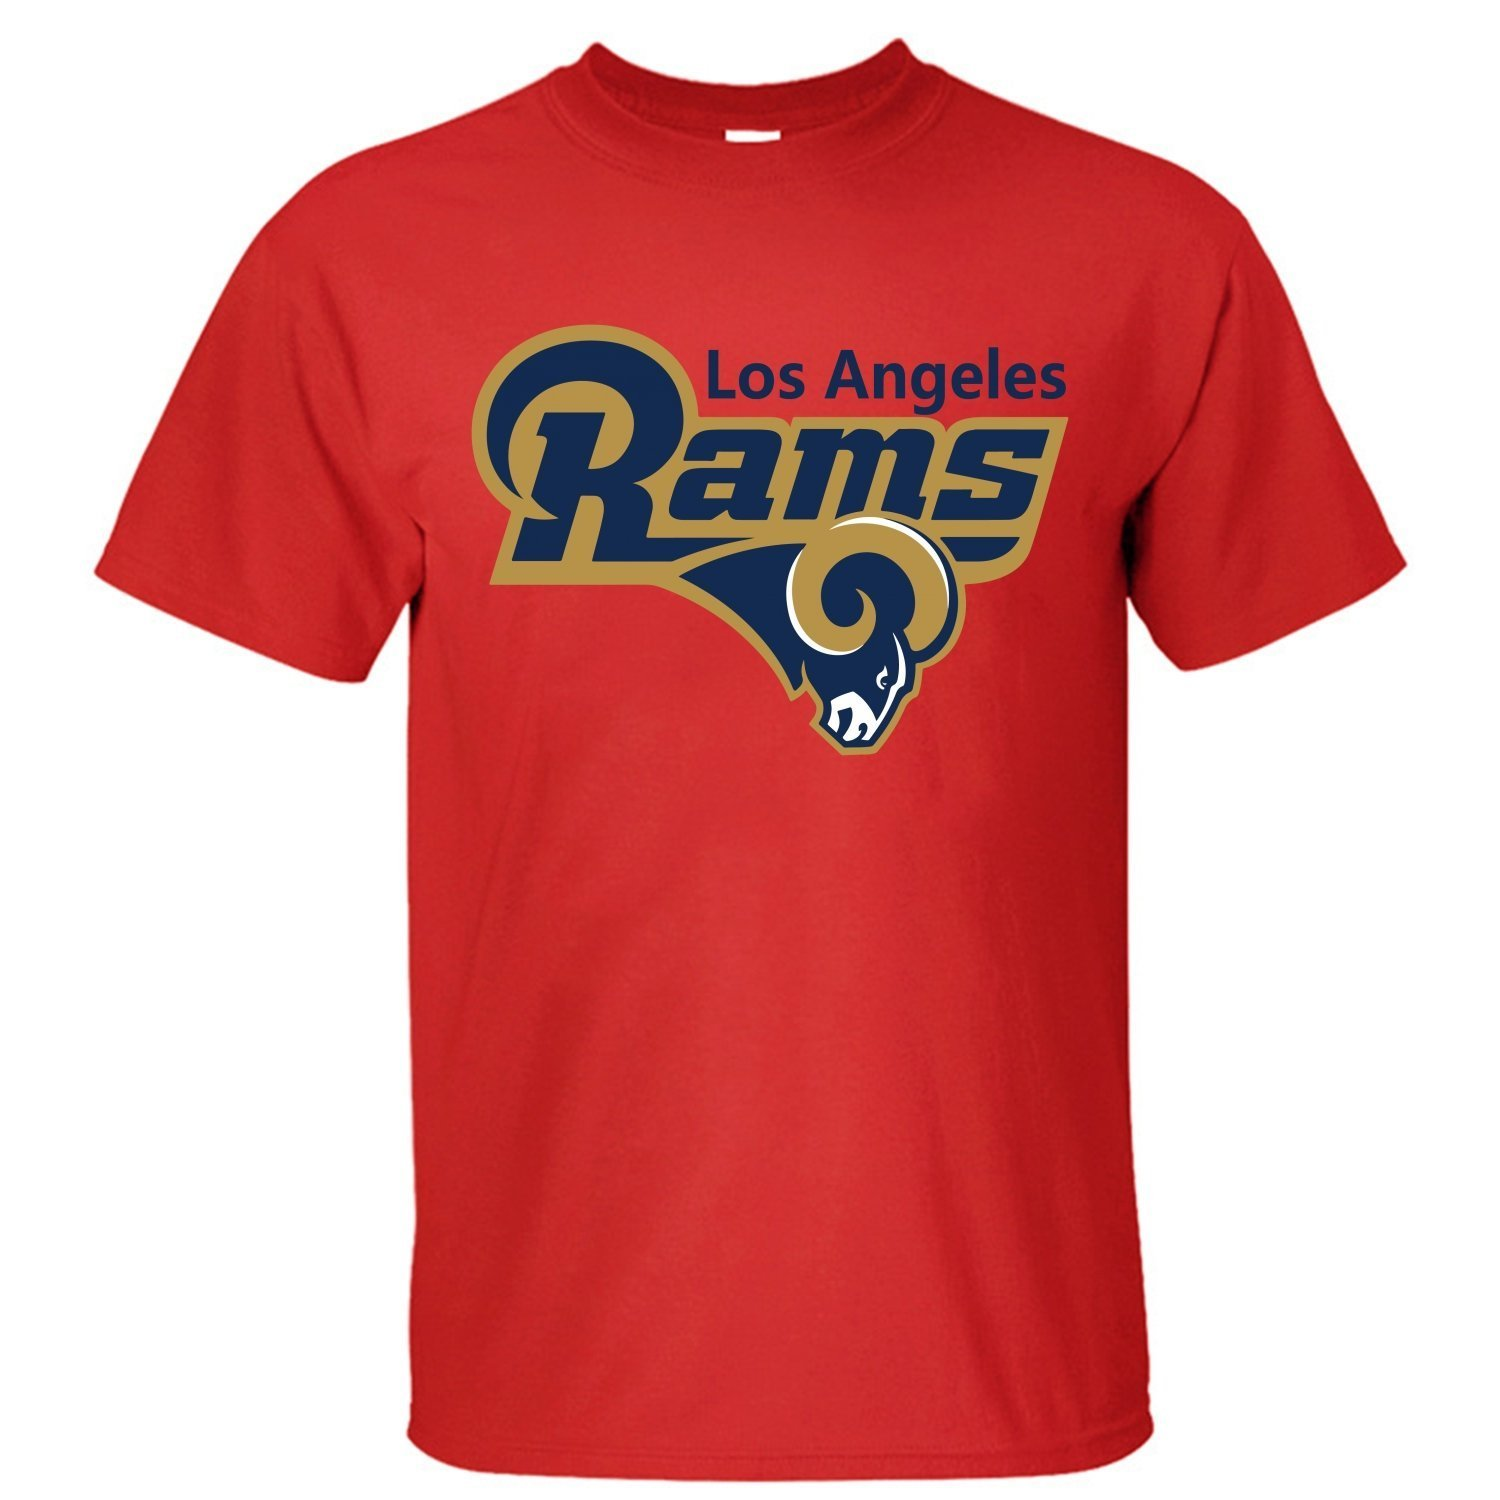 Delifhted Mens Los Angeles Rams 2016 Football LA Rams St Louis Rams Logo Cotton T Shirt